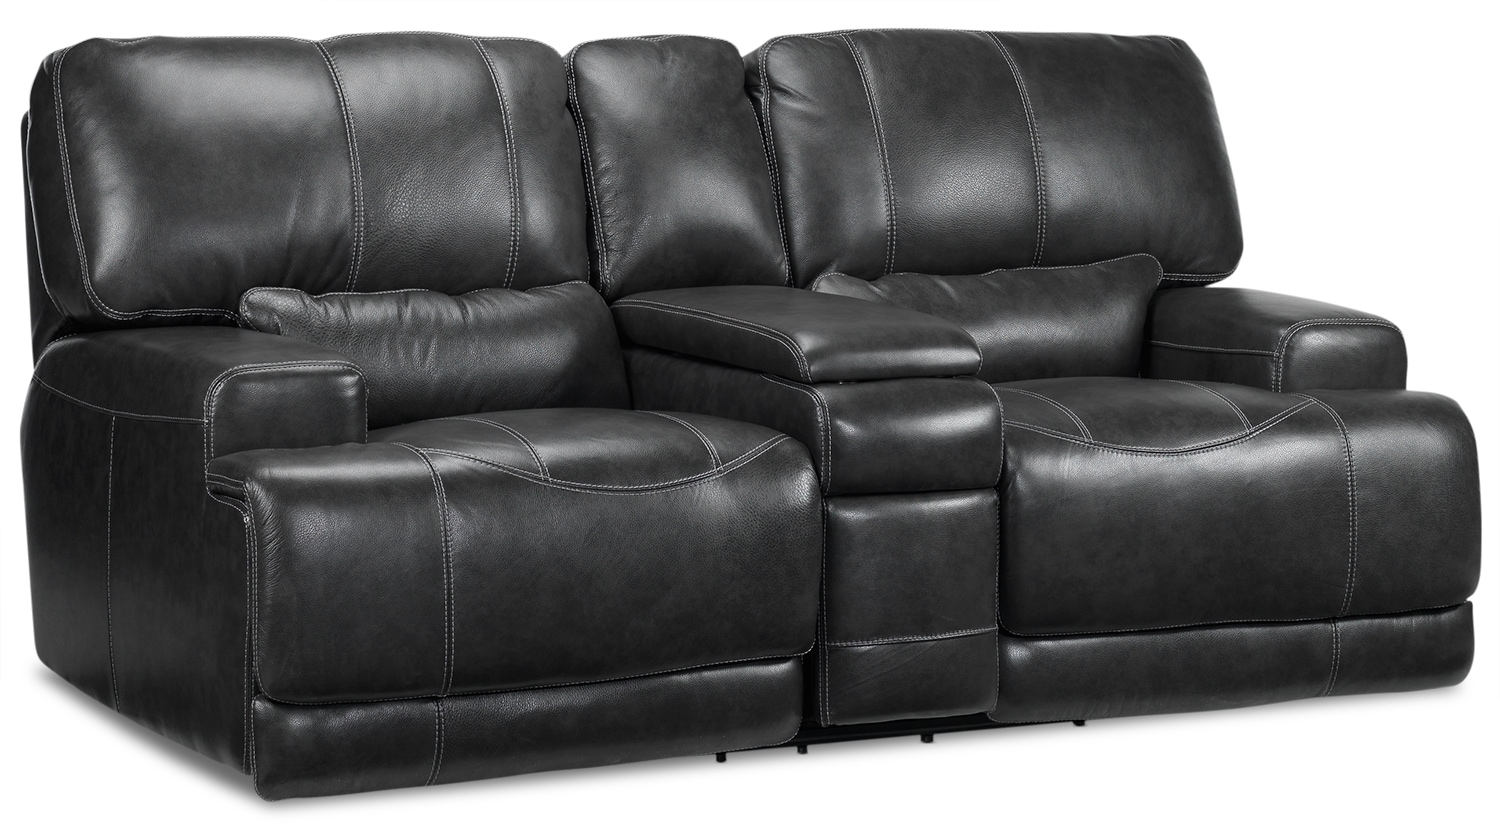 Dearborn power reclining sofa charcoal leon 39 s Power reclining sofas and loveseats